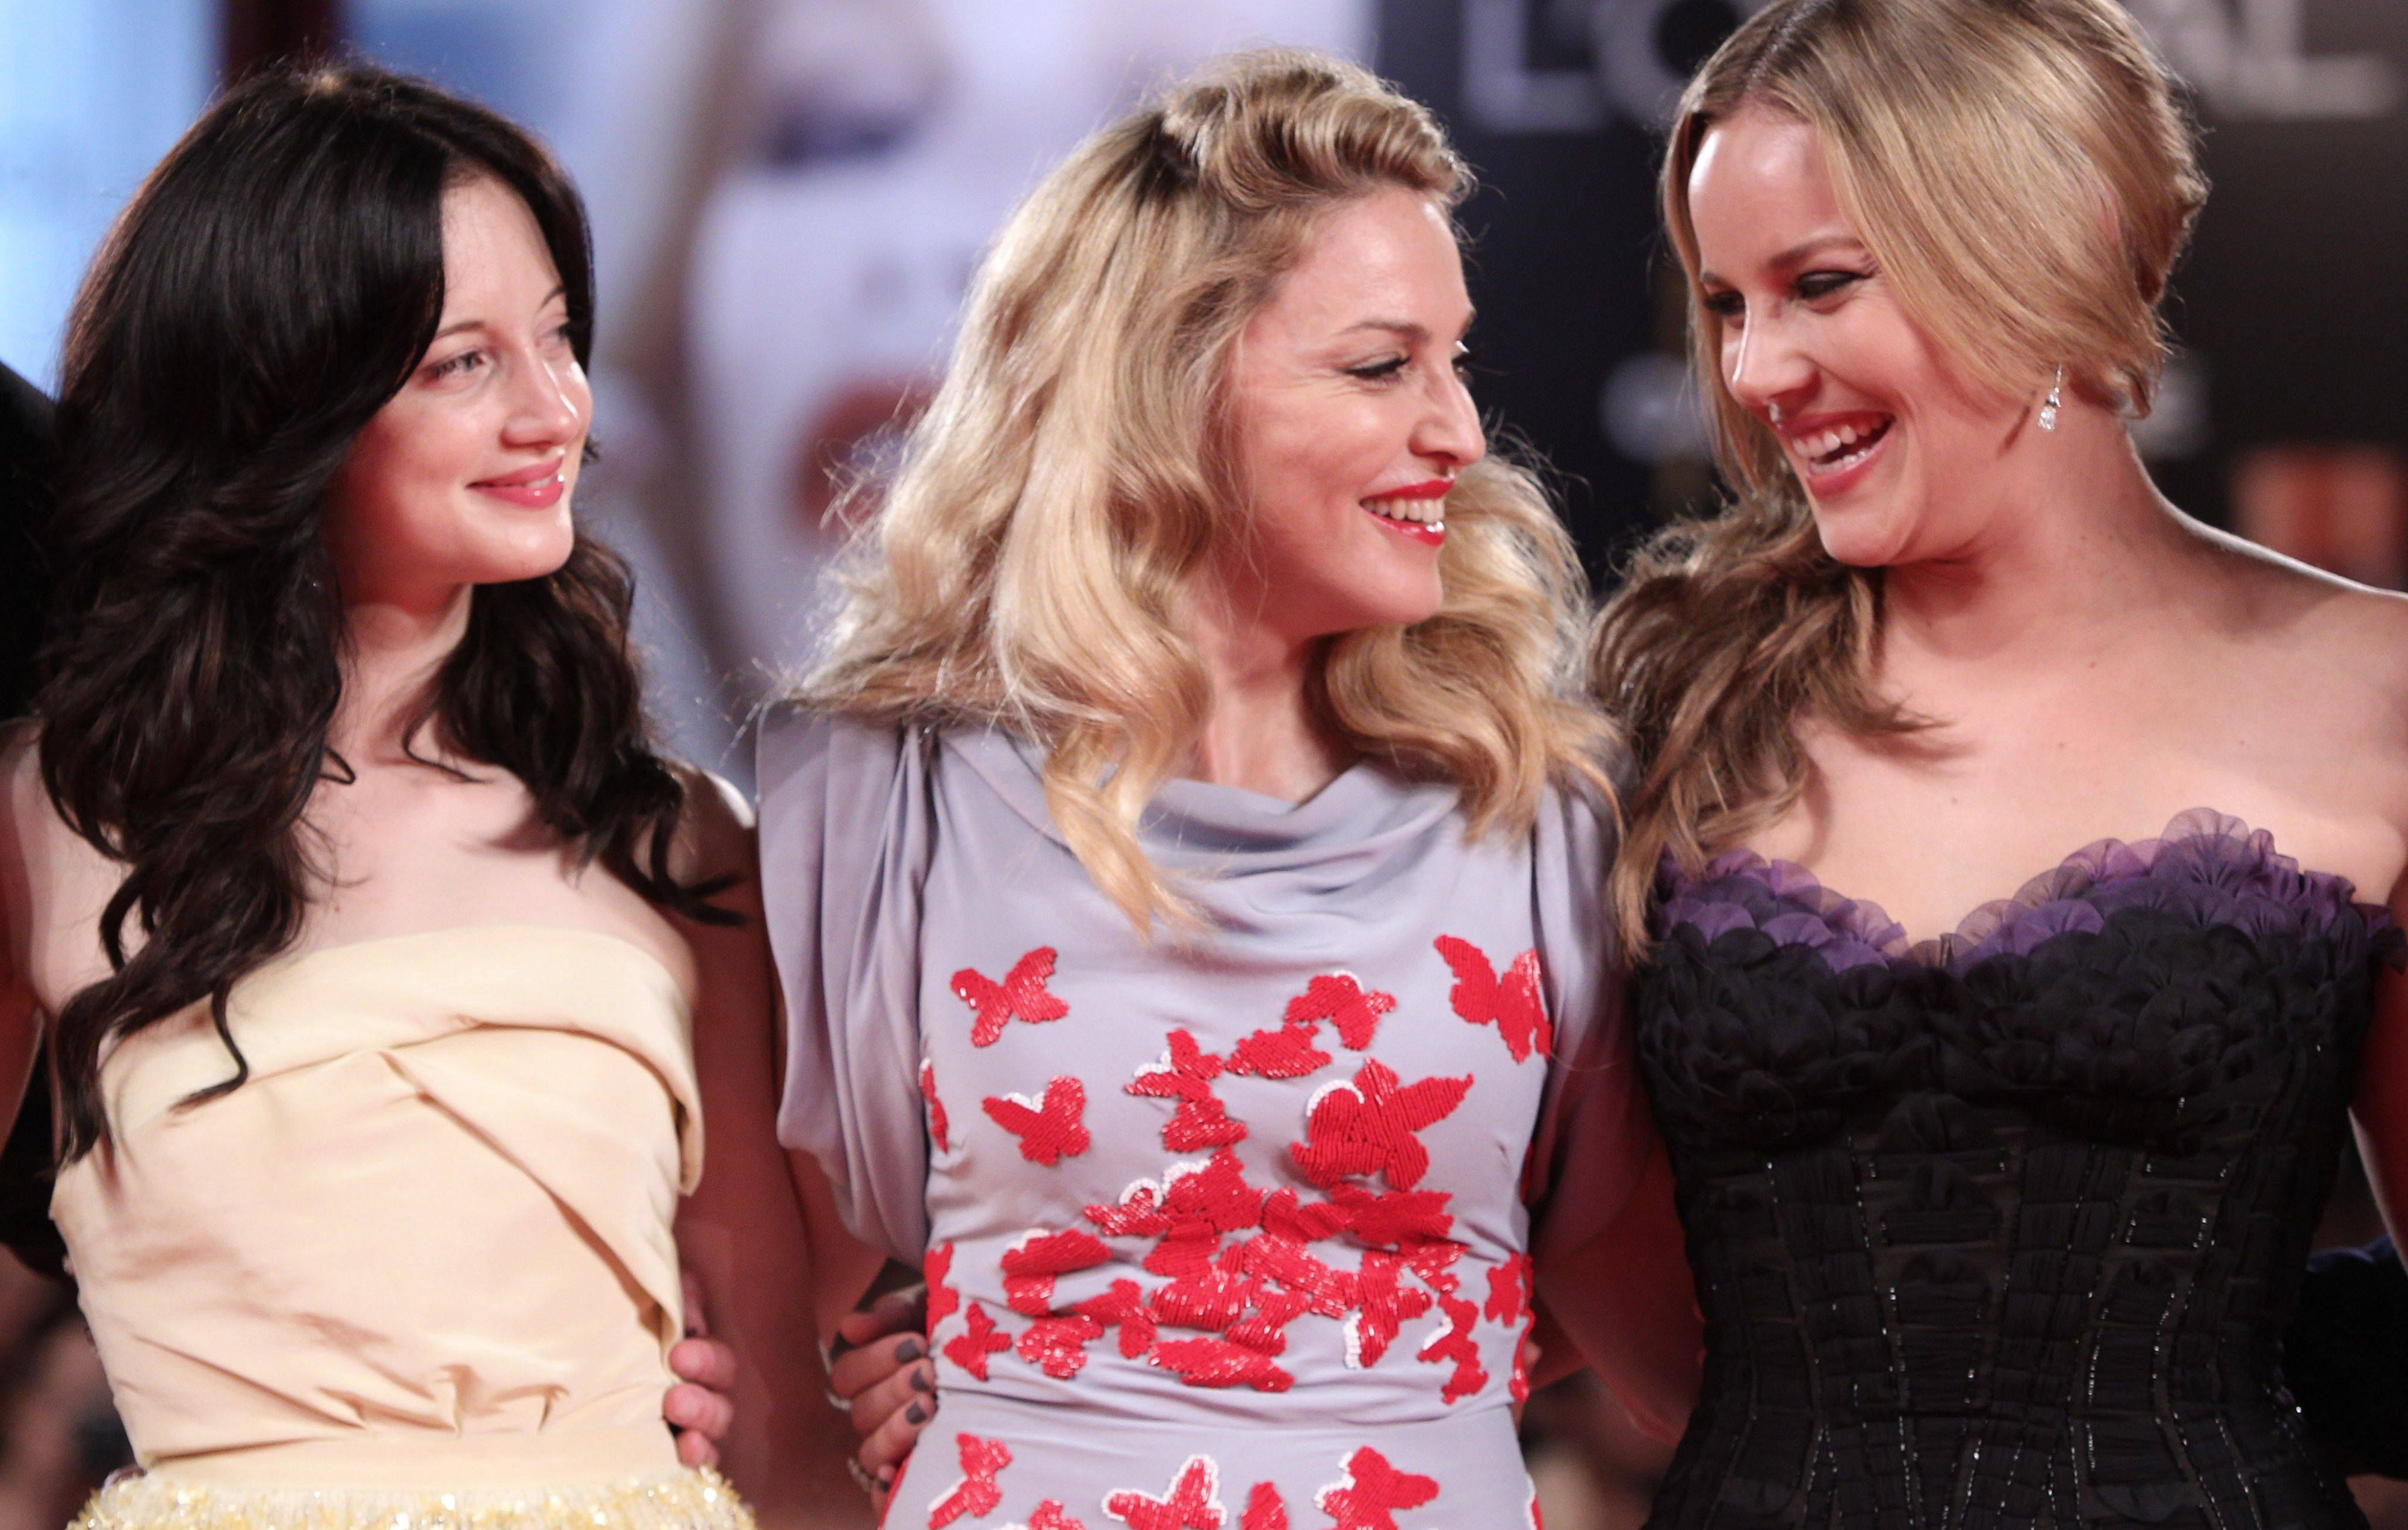 British actress Andrea Riseborough, singer and director Madonna and Australian actress Abbie Cornish arrive for the premiere of the film W.E. at the 68th edition of the Venice Film Festival in Venice, Italy, Thursday, Sept. 1.